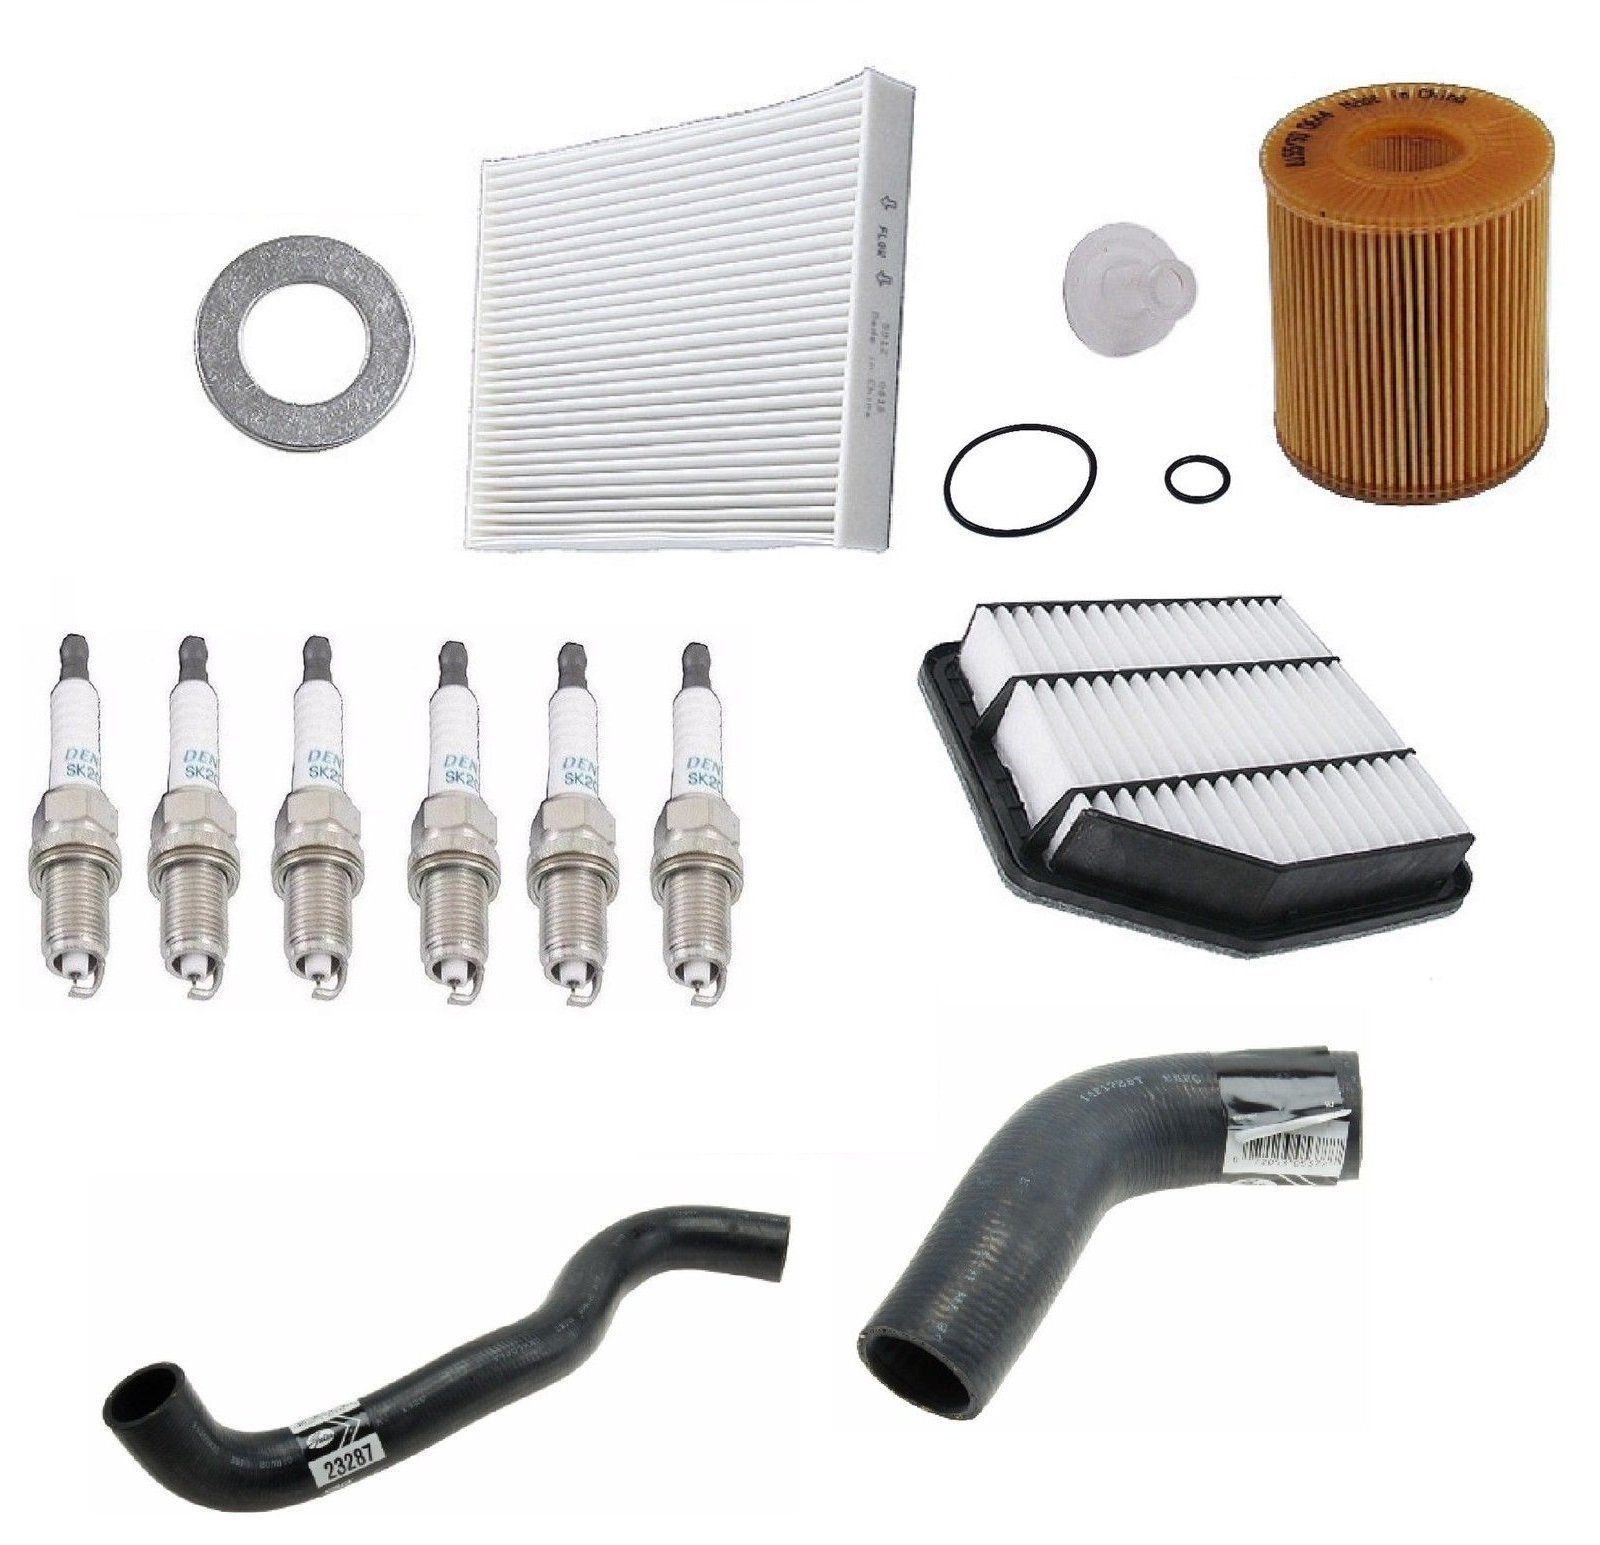 Tune Up Kit Oil Plugs Filters Hoses for Lexus IS250 06-10 Lexus IS350 10-12